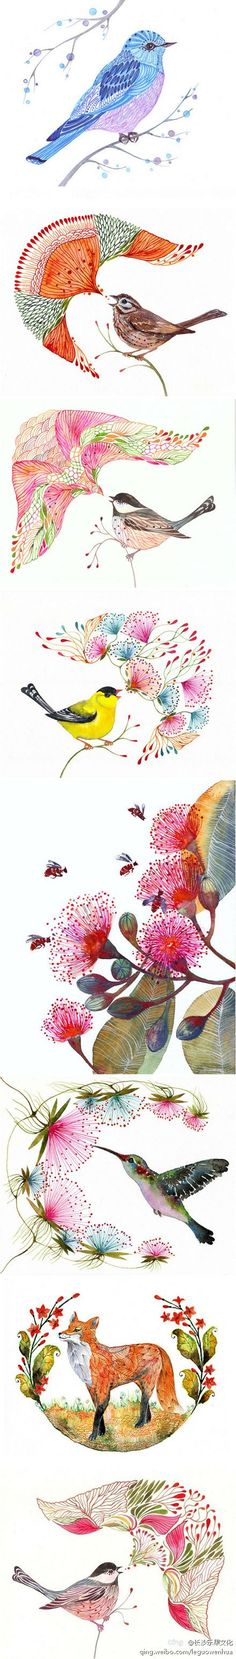 Ola Liola's animal watercolor paintings & illustrations by TevaKiwi These pretty botanical & animal images could make very cute tattoos. it's hard Painting & Drawing, Watercolor Paintings, Bird Paintings, Watercolor Tattoo, Art And Illustration, Illustrations, Watercolor Animals, Watercolor Flowers, Art Plastique